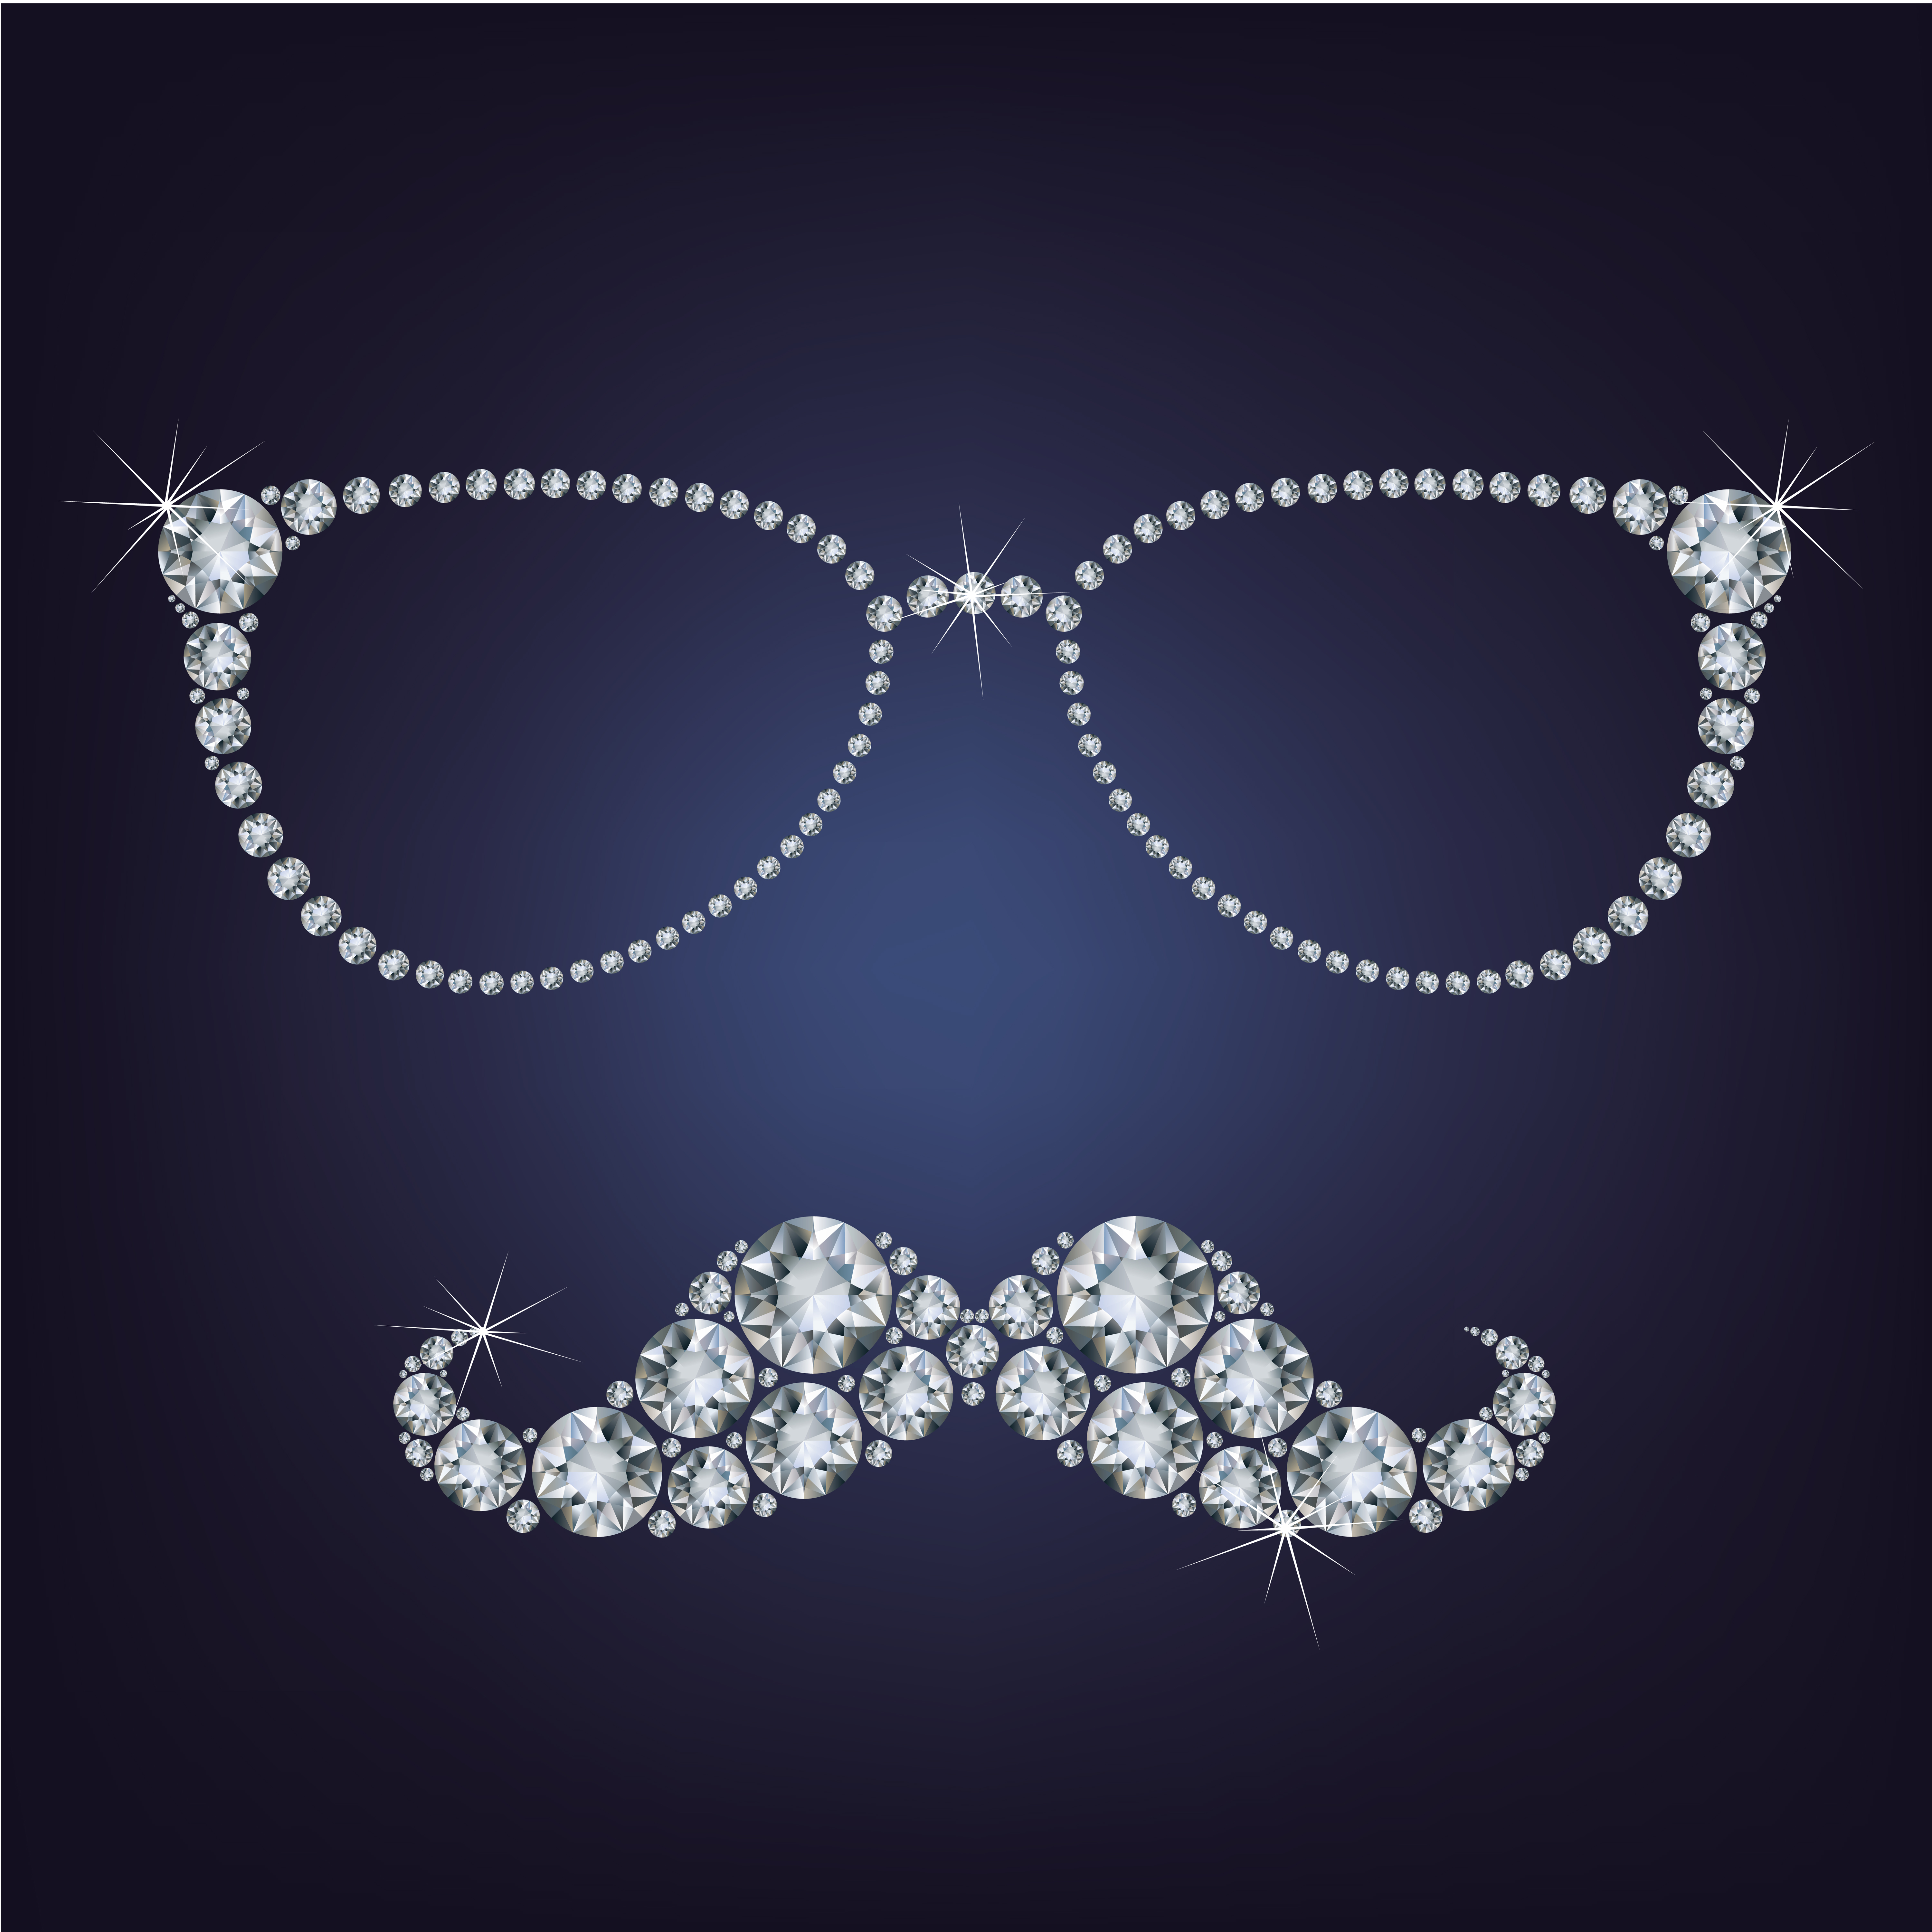 75857f9d0921 Let rhinestones freshen up your look this season, any way you see fit.